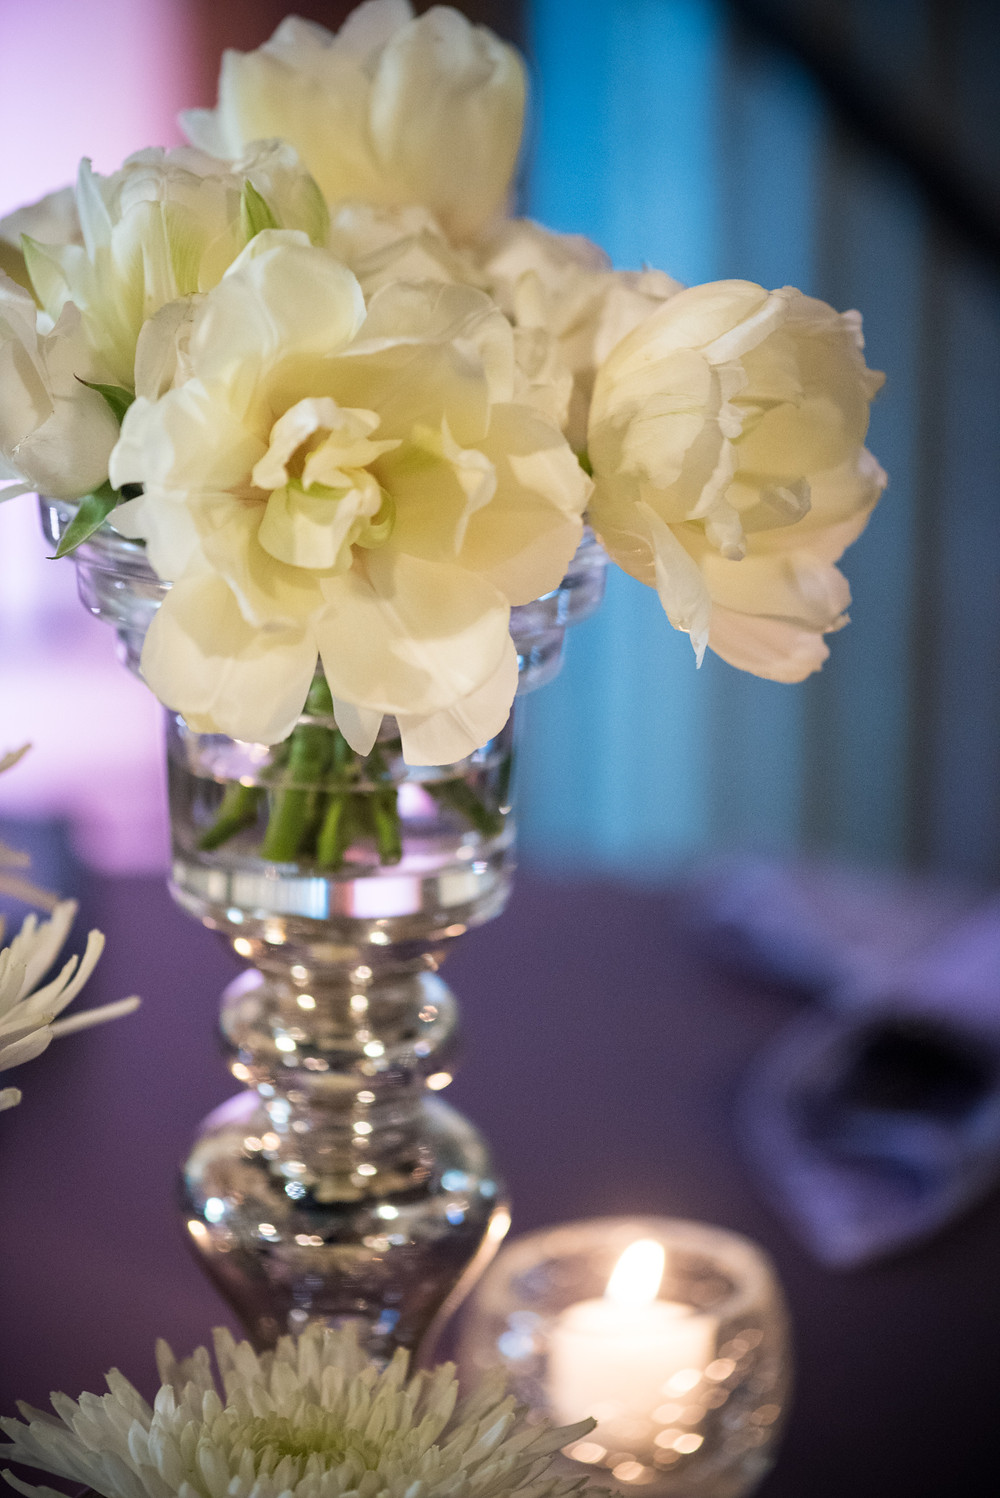 White rose centerpiece  by Visual Impact Design | Photo by Allison Stahl Studio